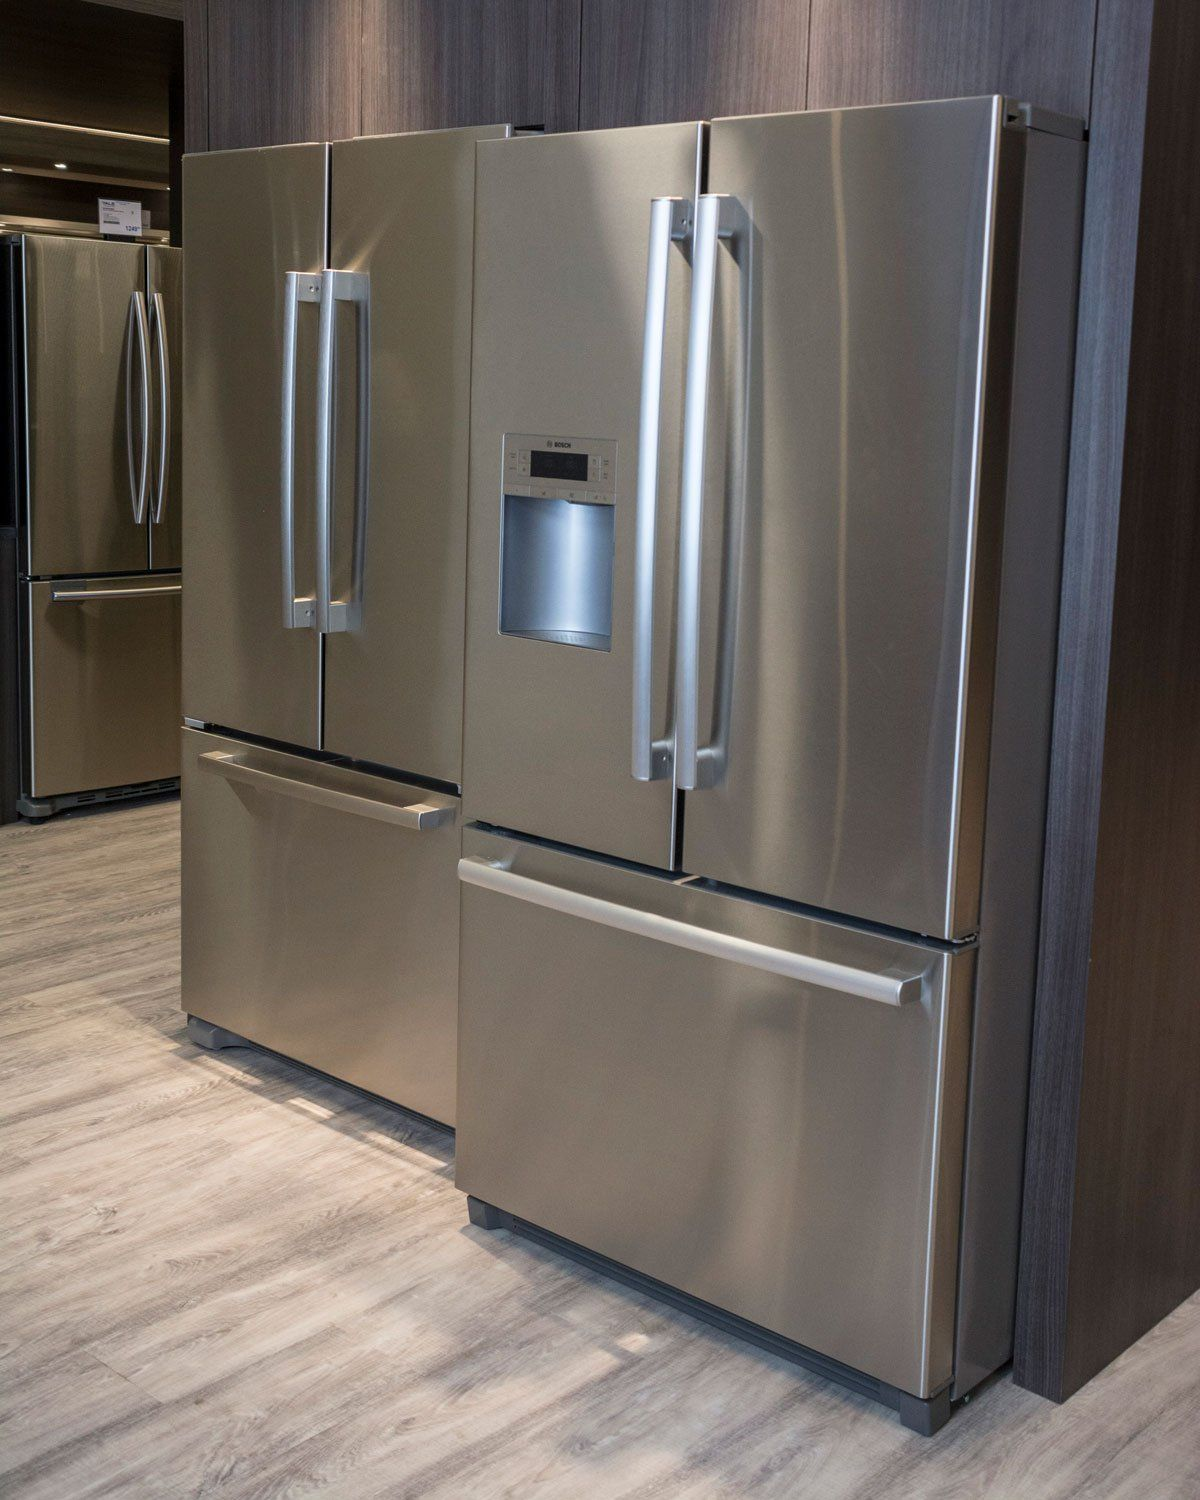 Best Rated Kitchen Appliances: The 7 Best Counter Depth Refrigerators For 2019 (Reviews